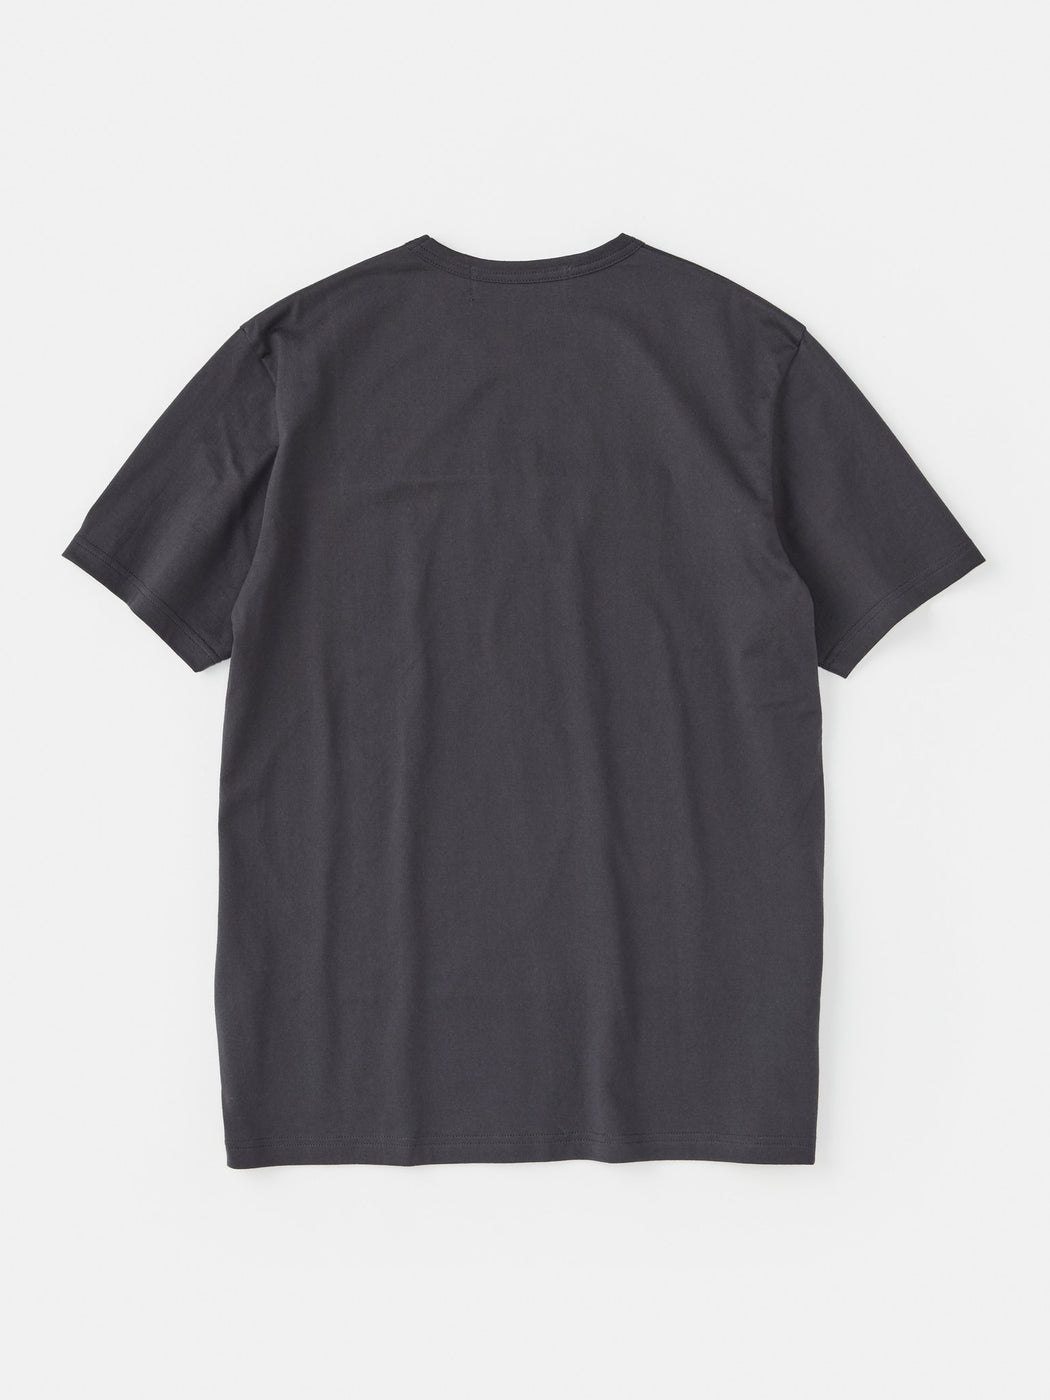 ALOYE Color Block Short Sleeve T-shirt Dark Gray-Black